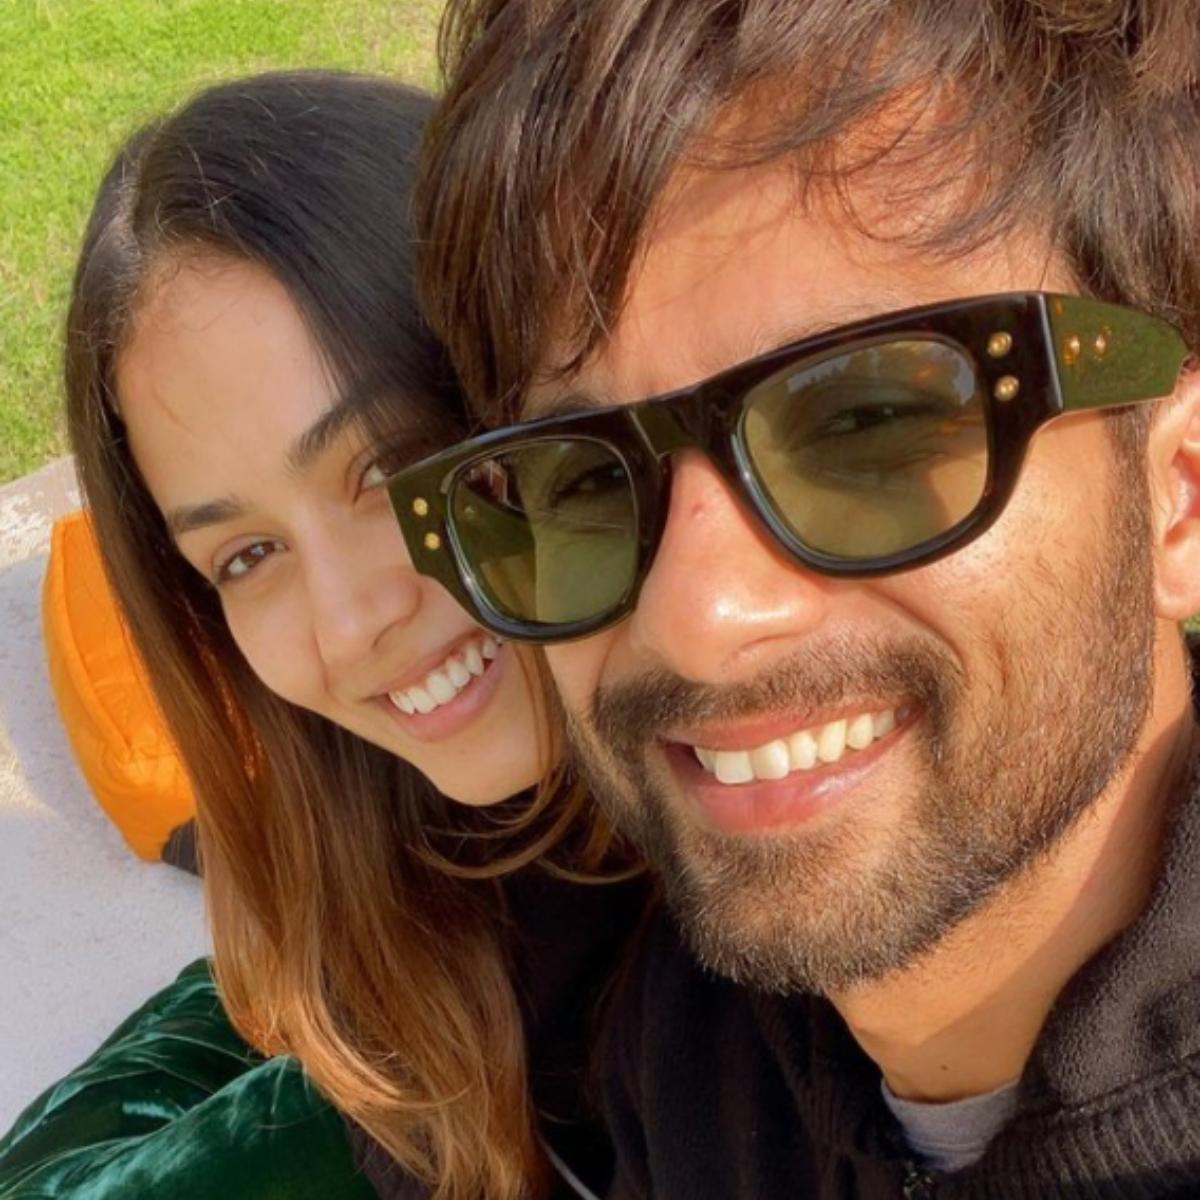 Shahid Kapoor and Mira Rajput's selfies